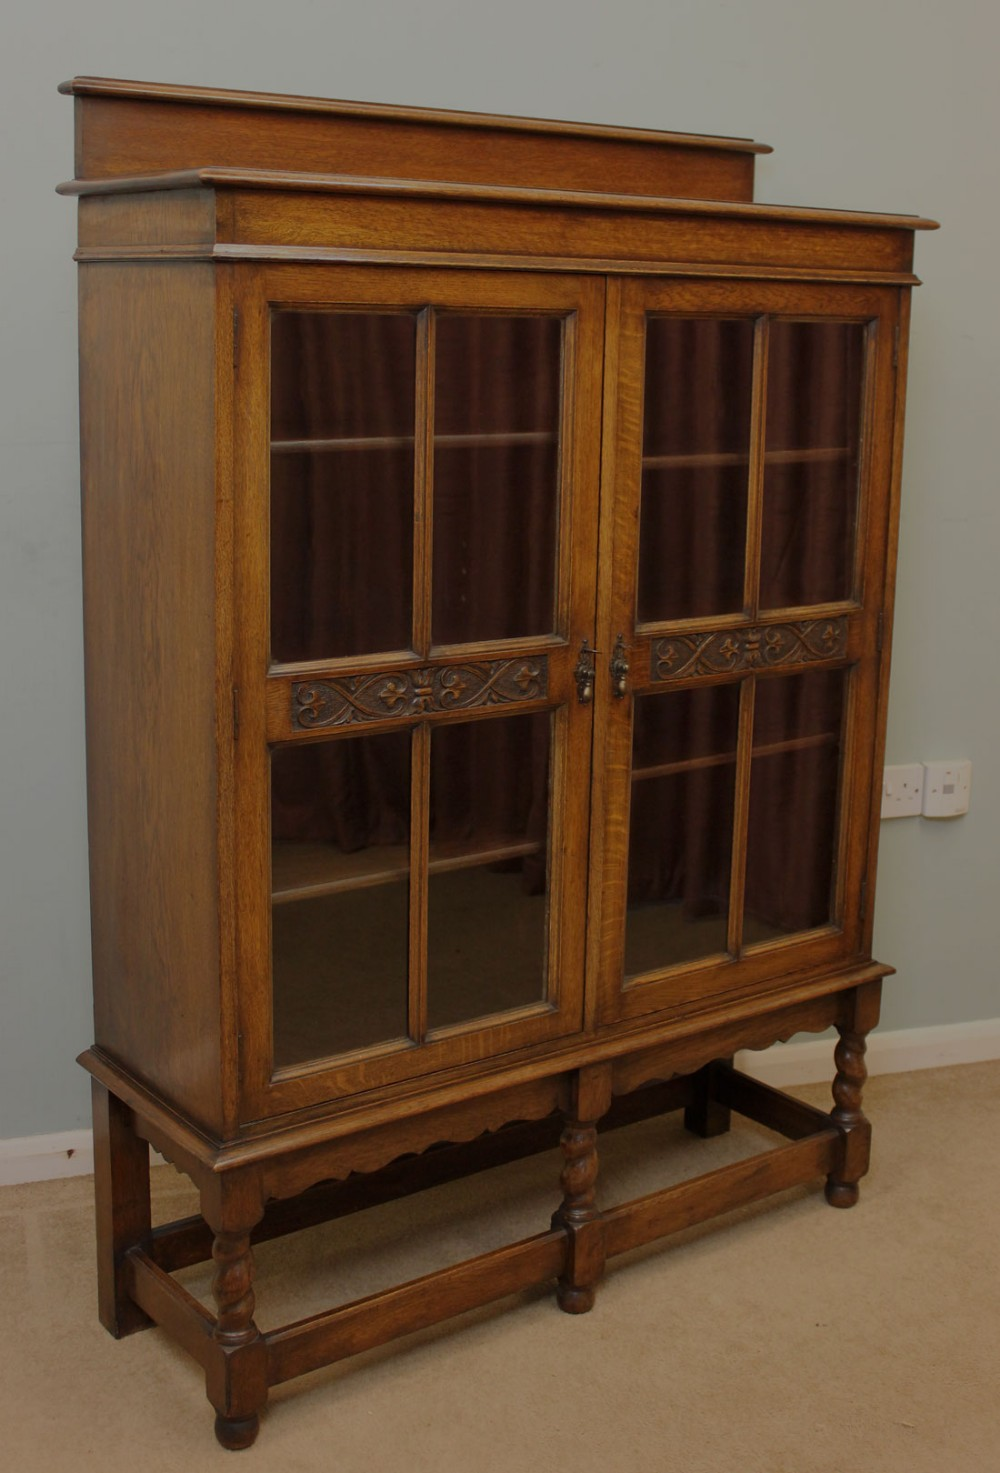 Antique oak glazed bookcase display cabinet 260194 for Antique display cabinet